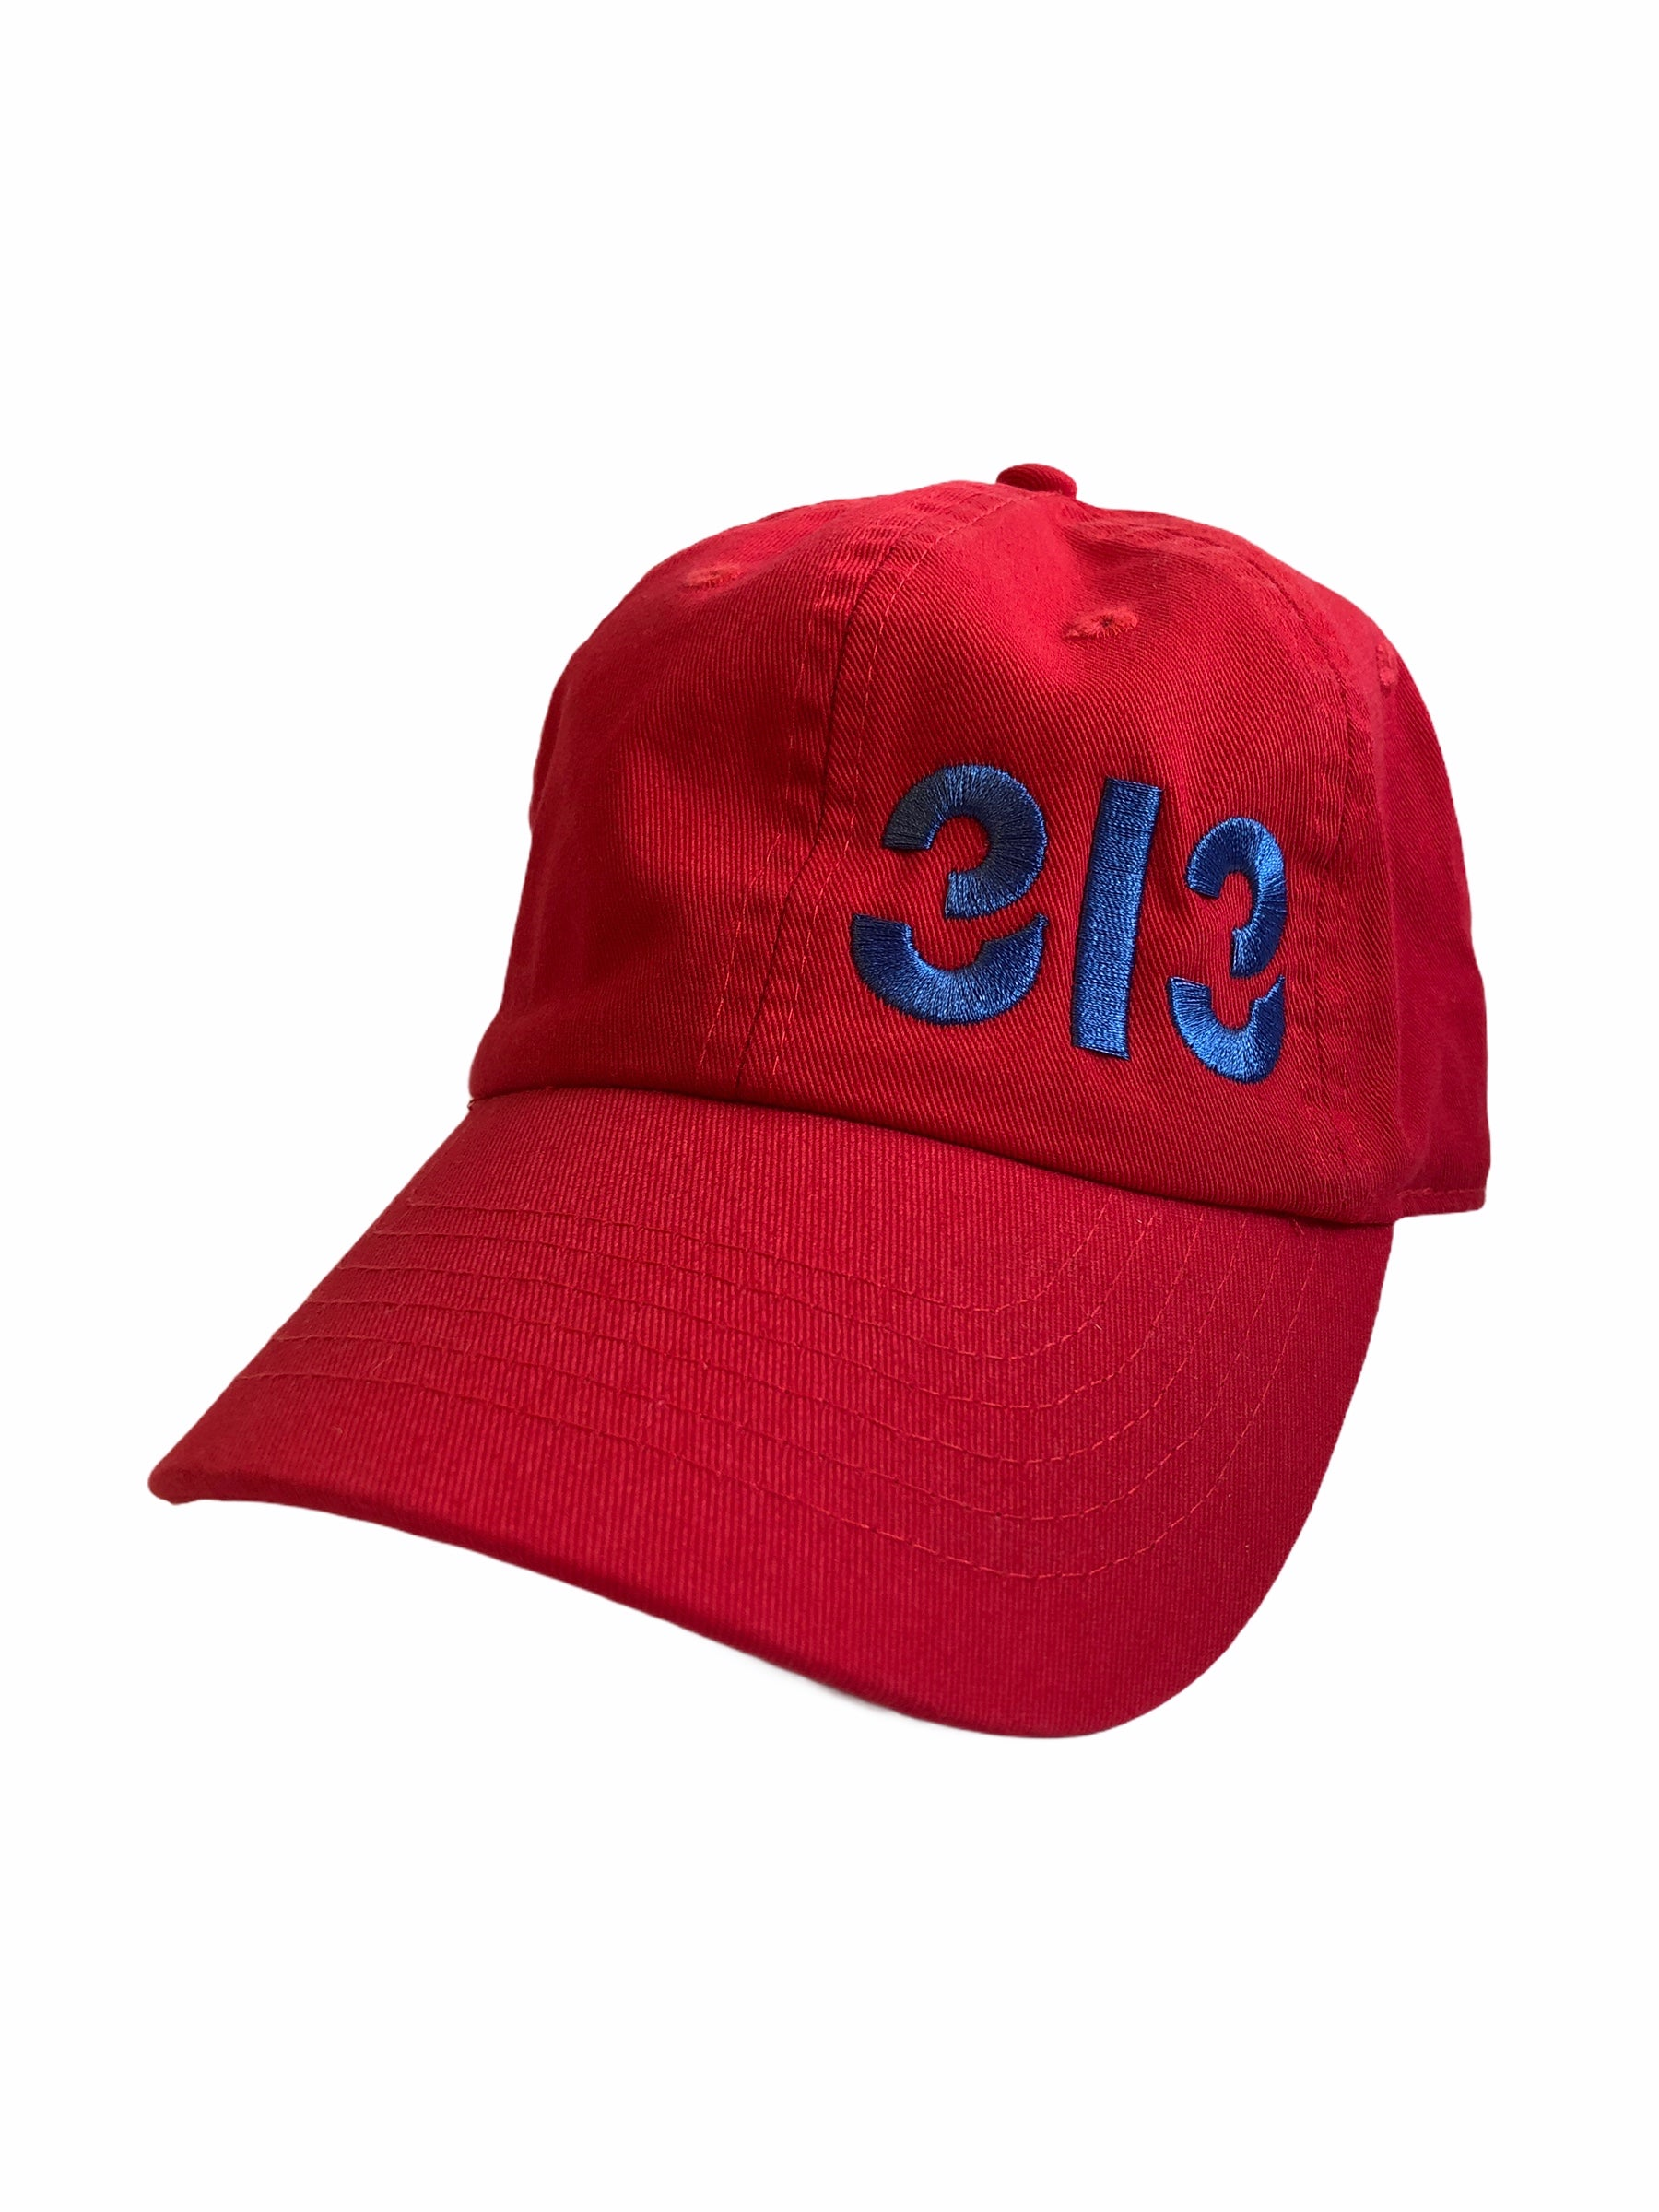 313 Champion Twill Cap - Blue + Red - Pure Detroit